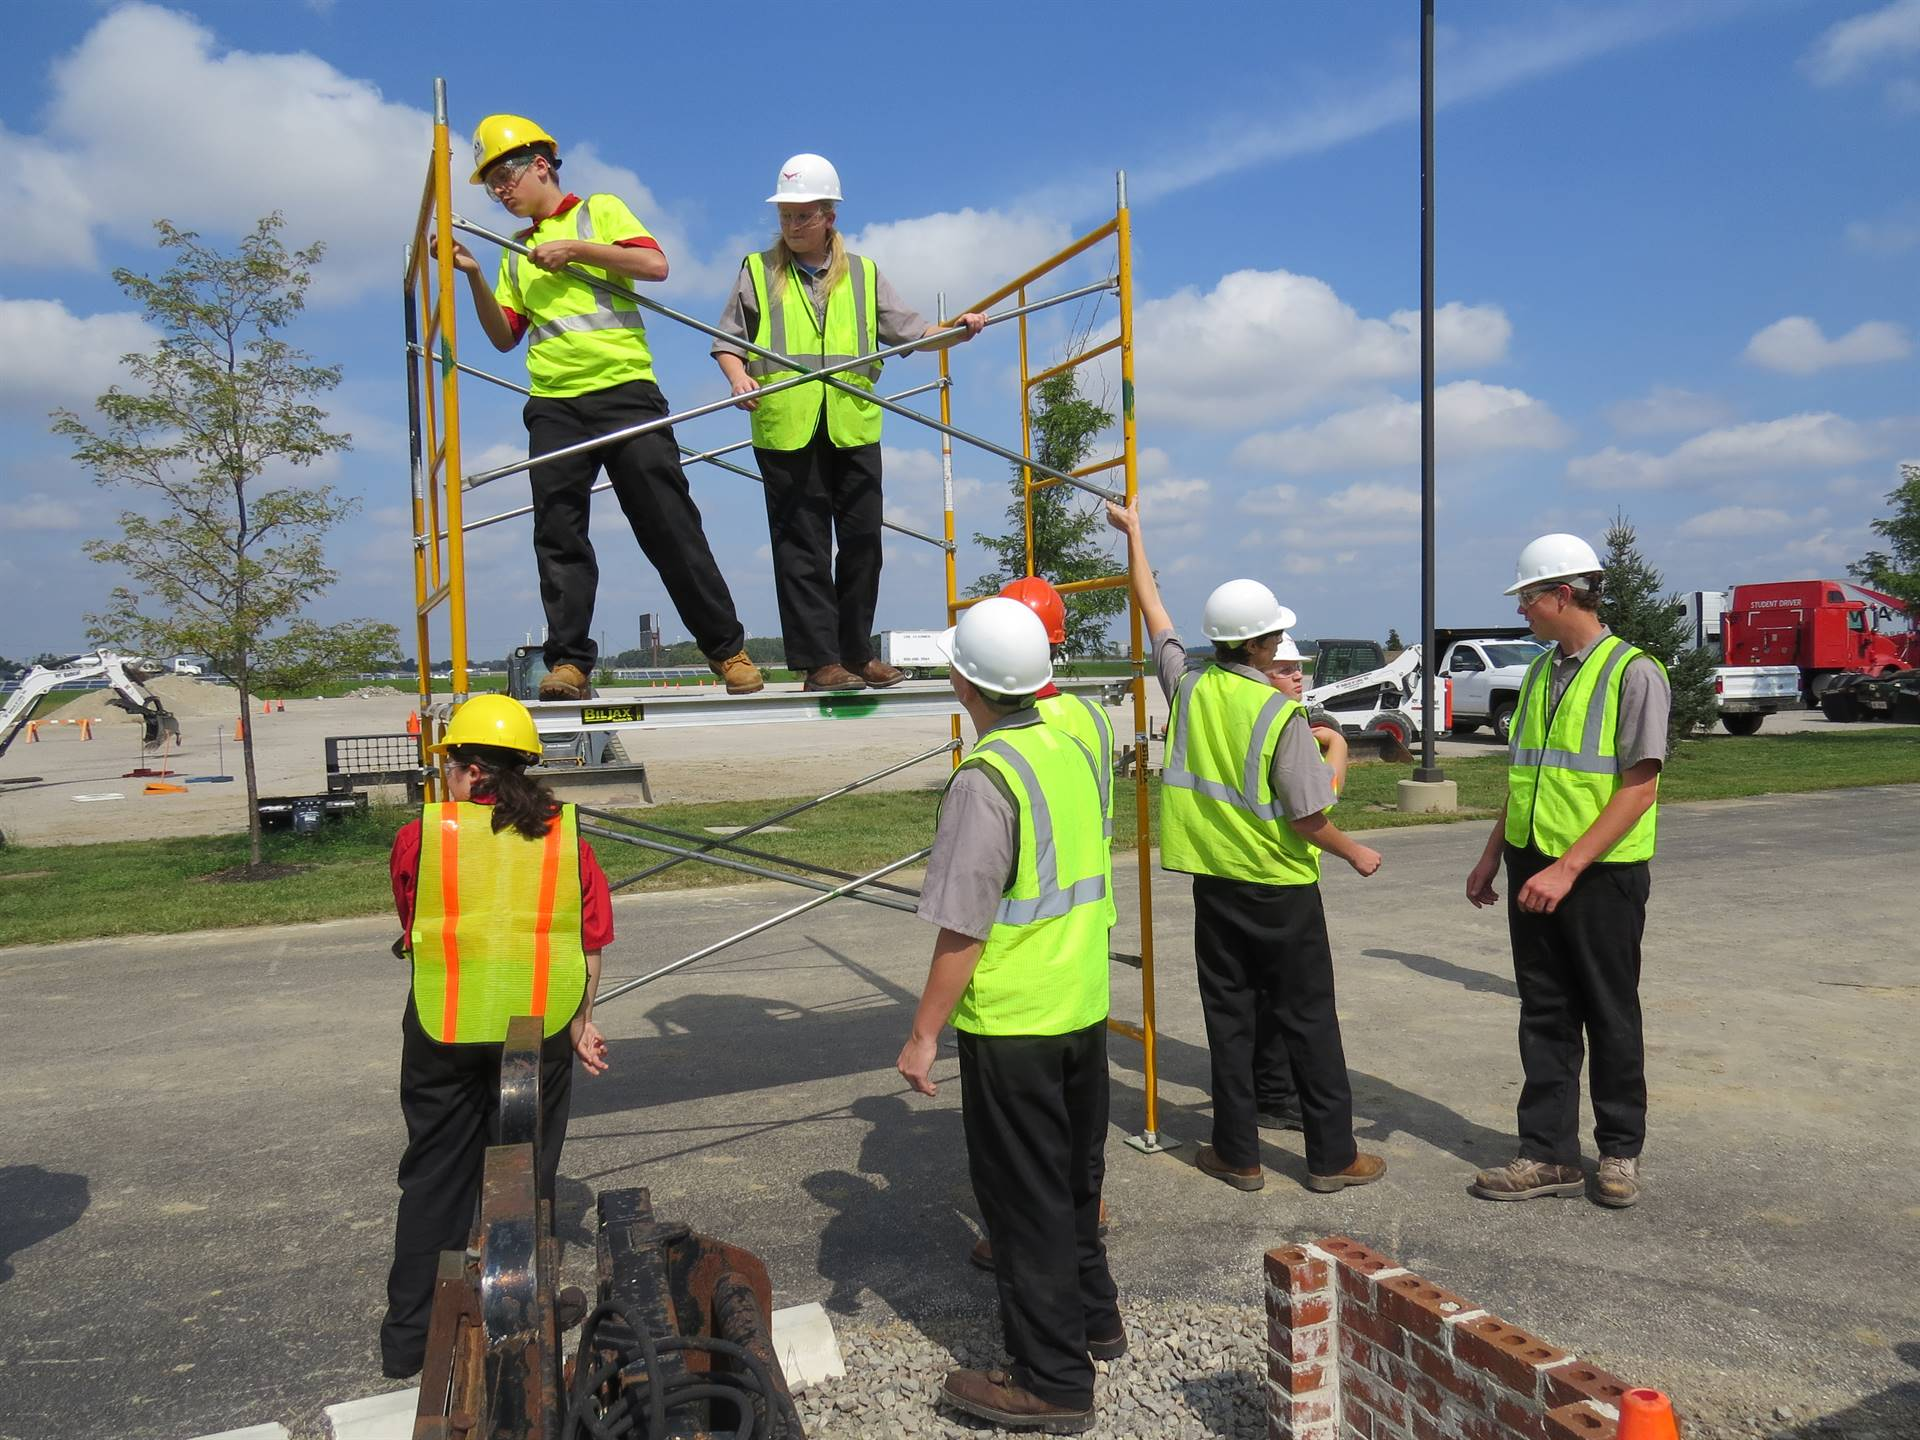 Construction Equipment Technology students build a scaffolding.